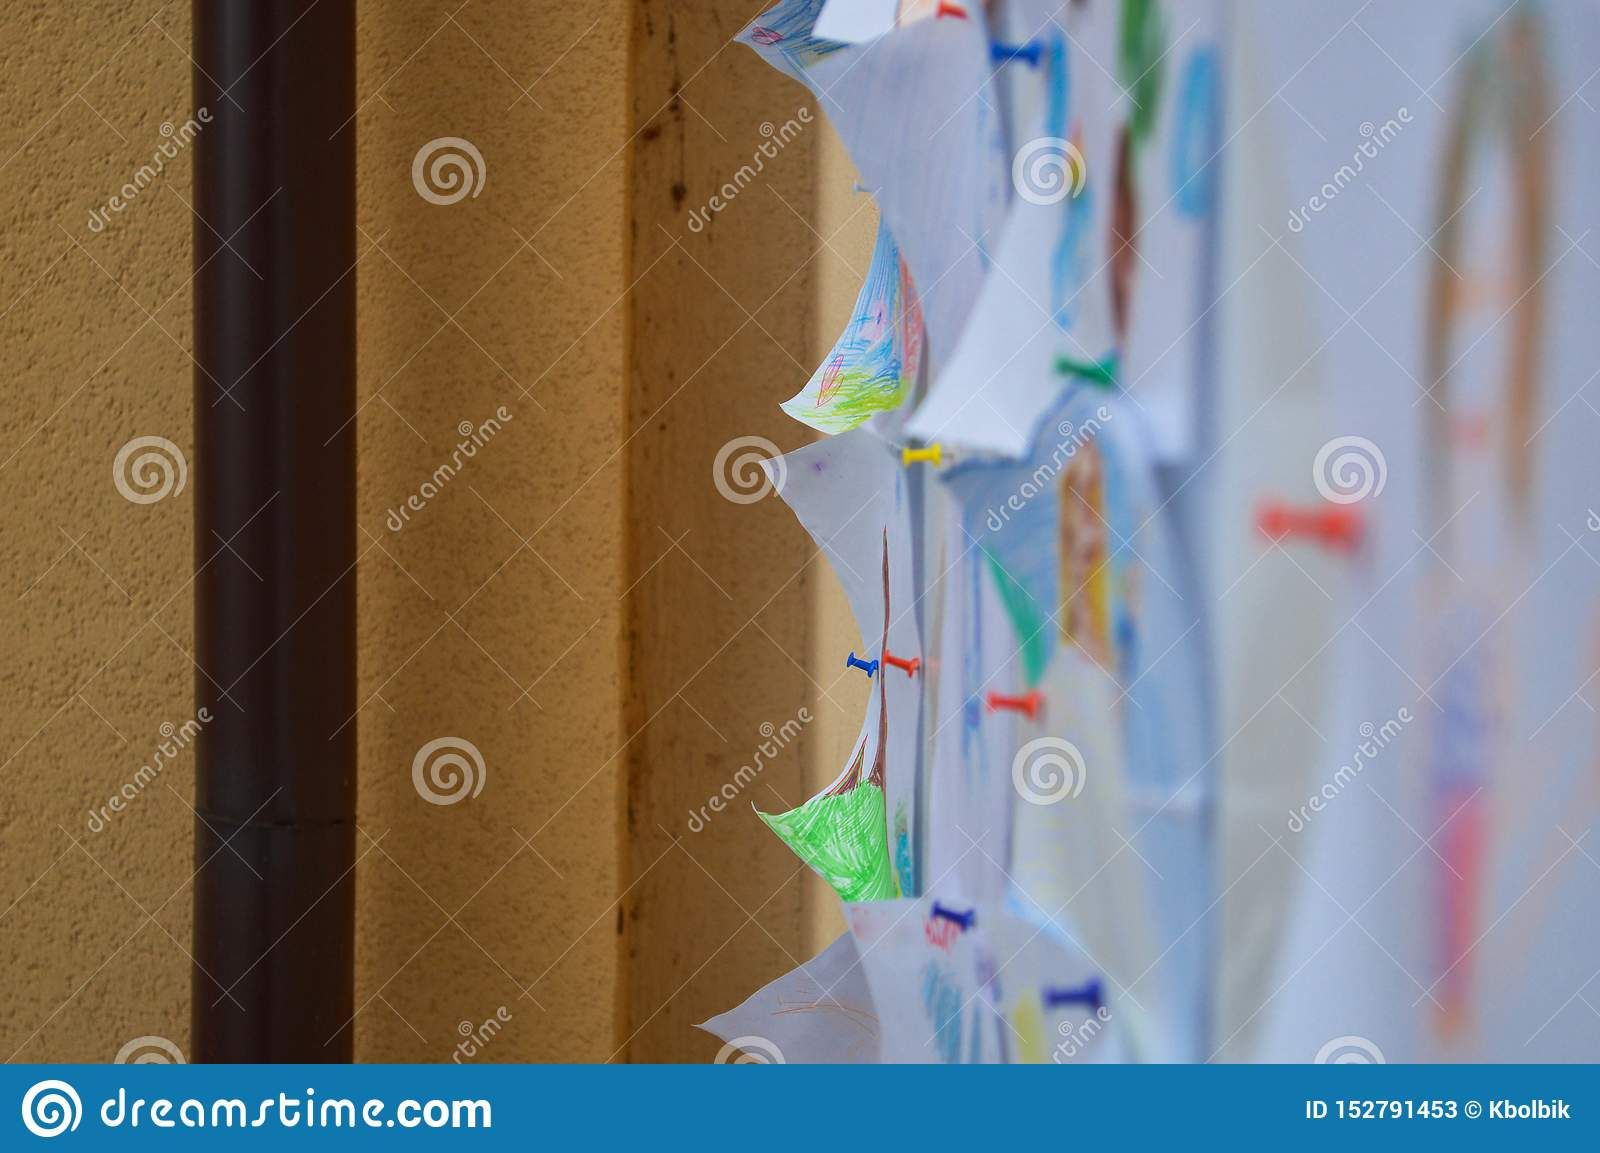 Sheets of paper, notes, drawings, documents pinned to a blackboard, a wall for a reminder, submission of announcements, scheduling